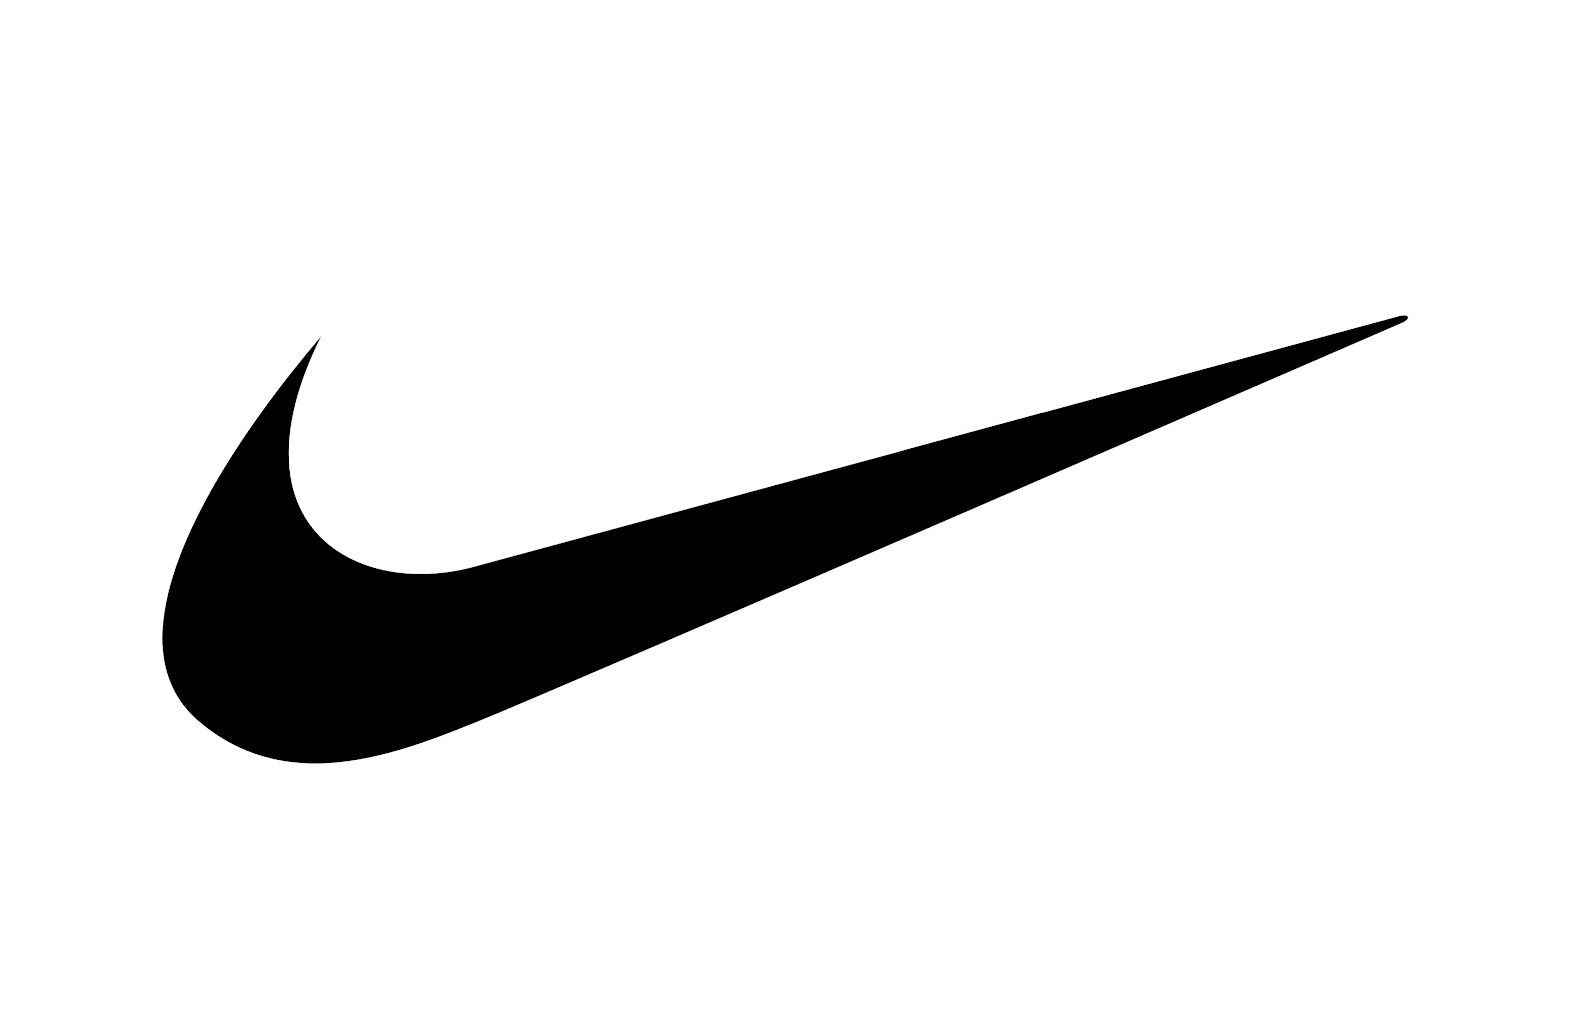 Pin by Julian Family Stories on About Me   Nike symbol, Nike images, Nike